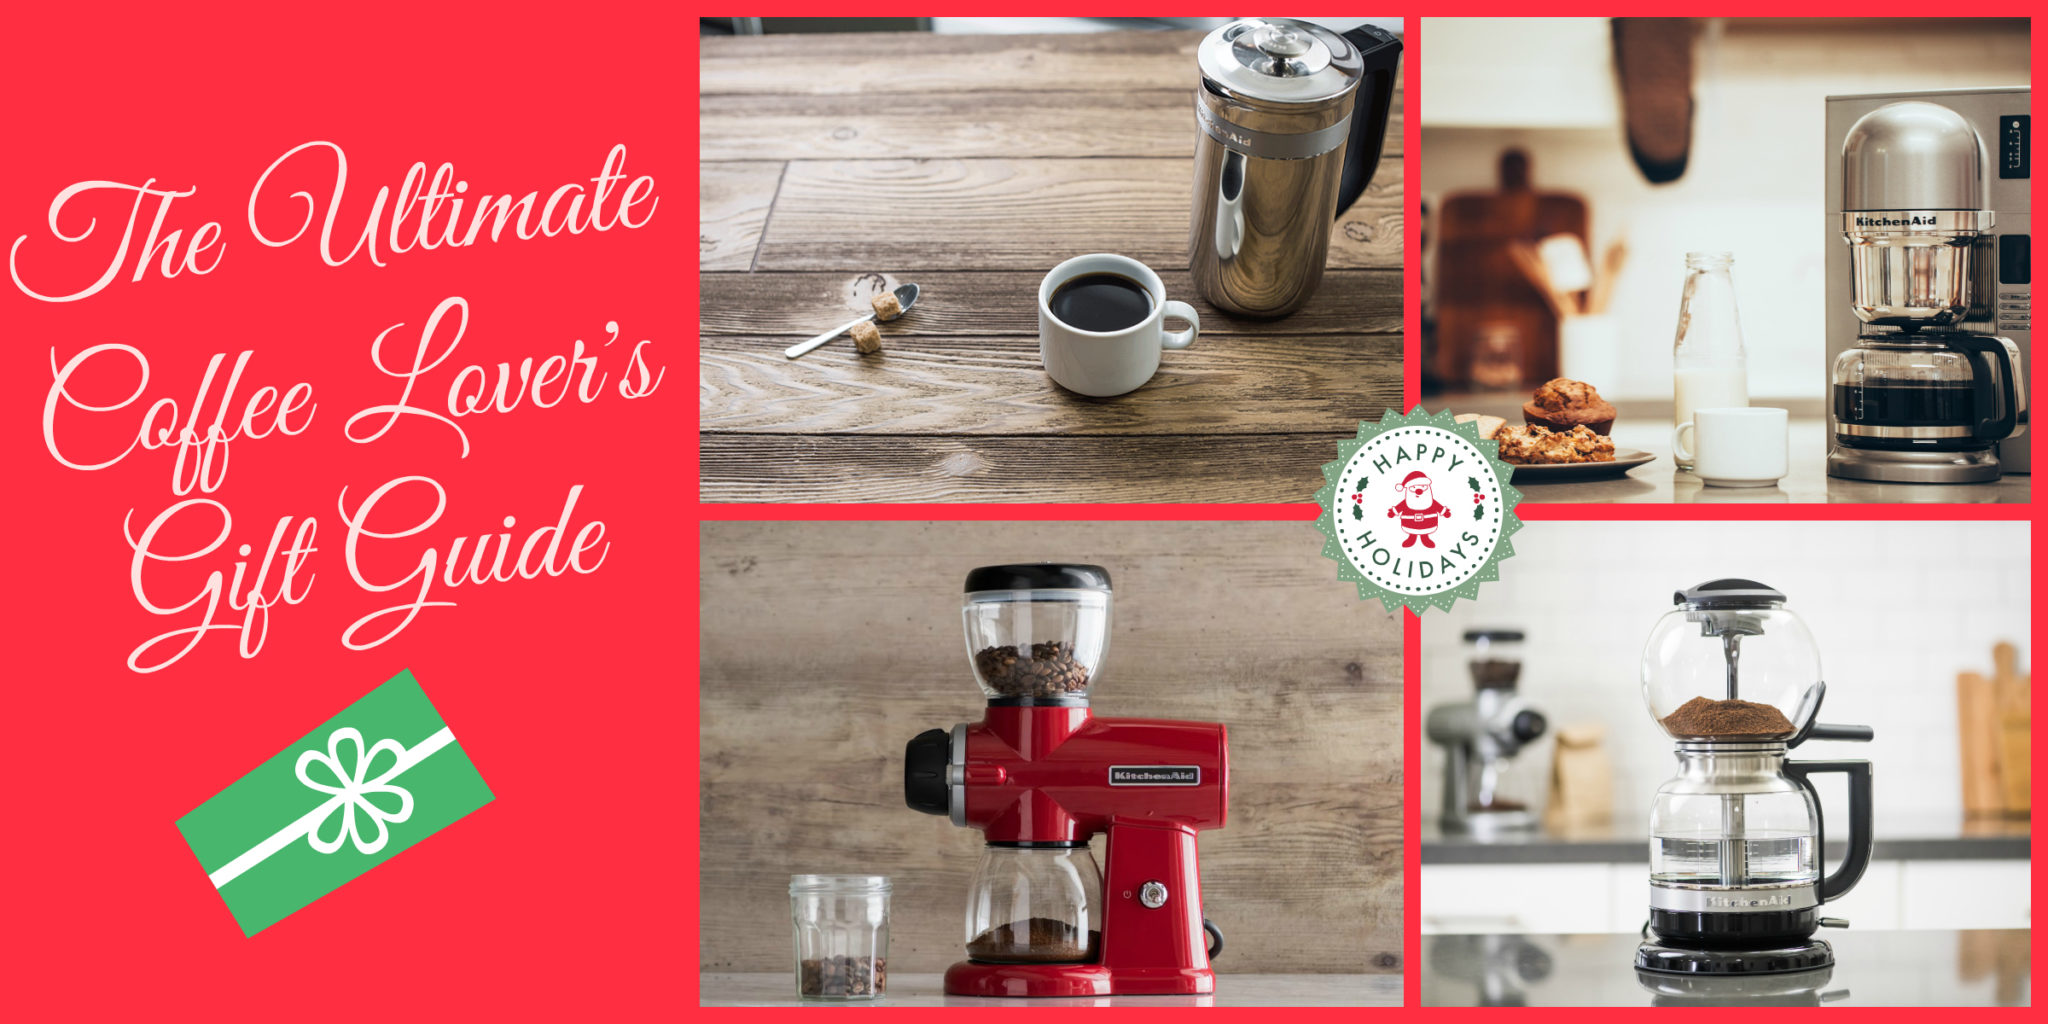 Kitchen Aid Coffee Gift Guide